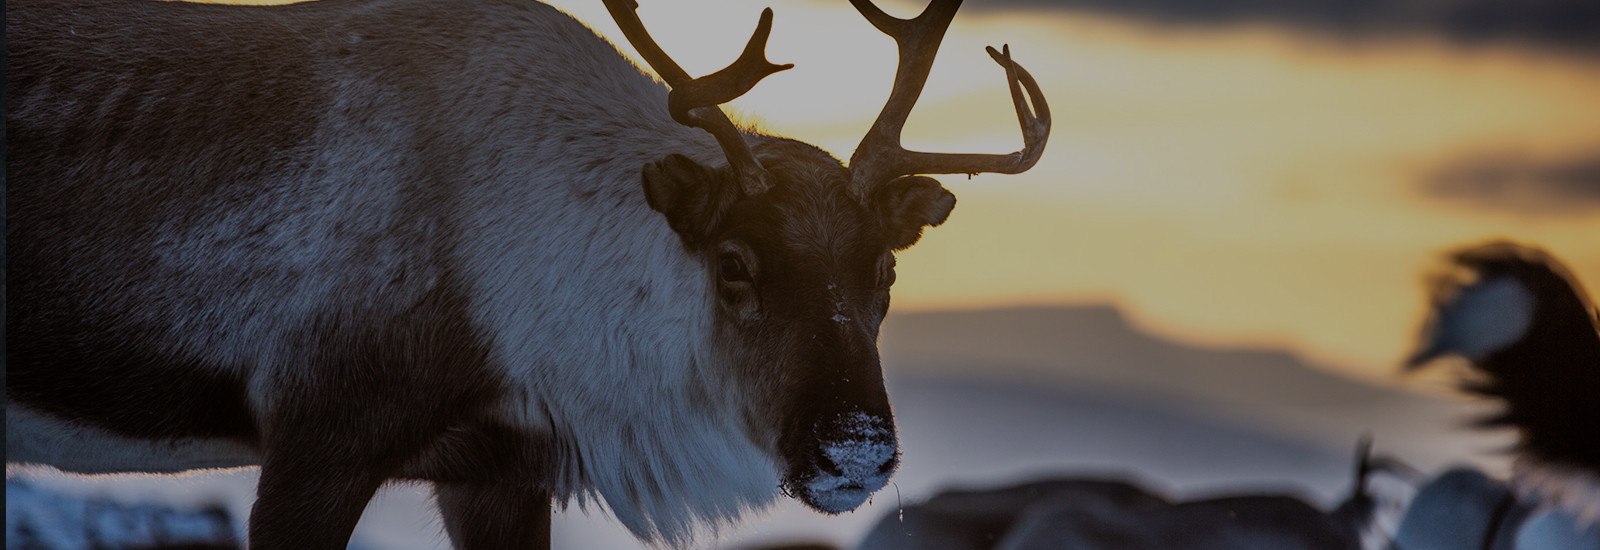 The land of reindeers